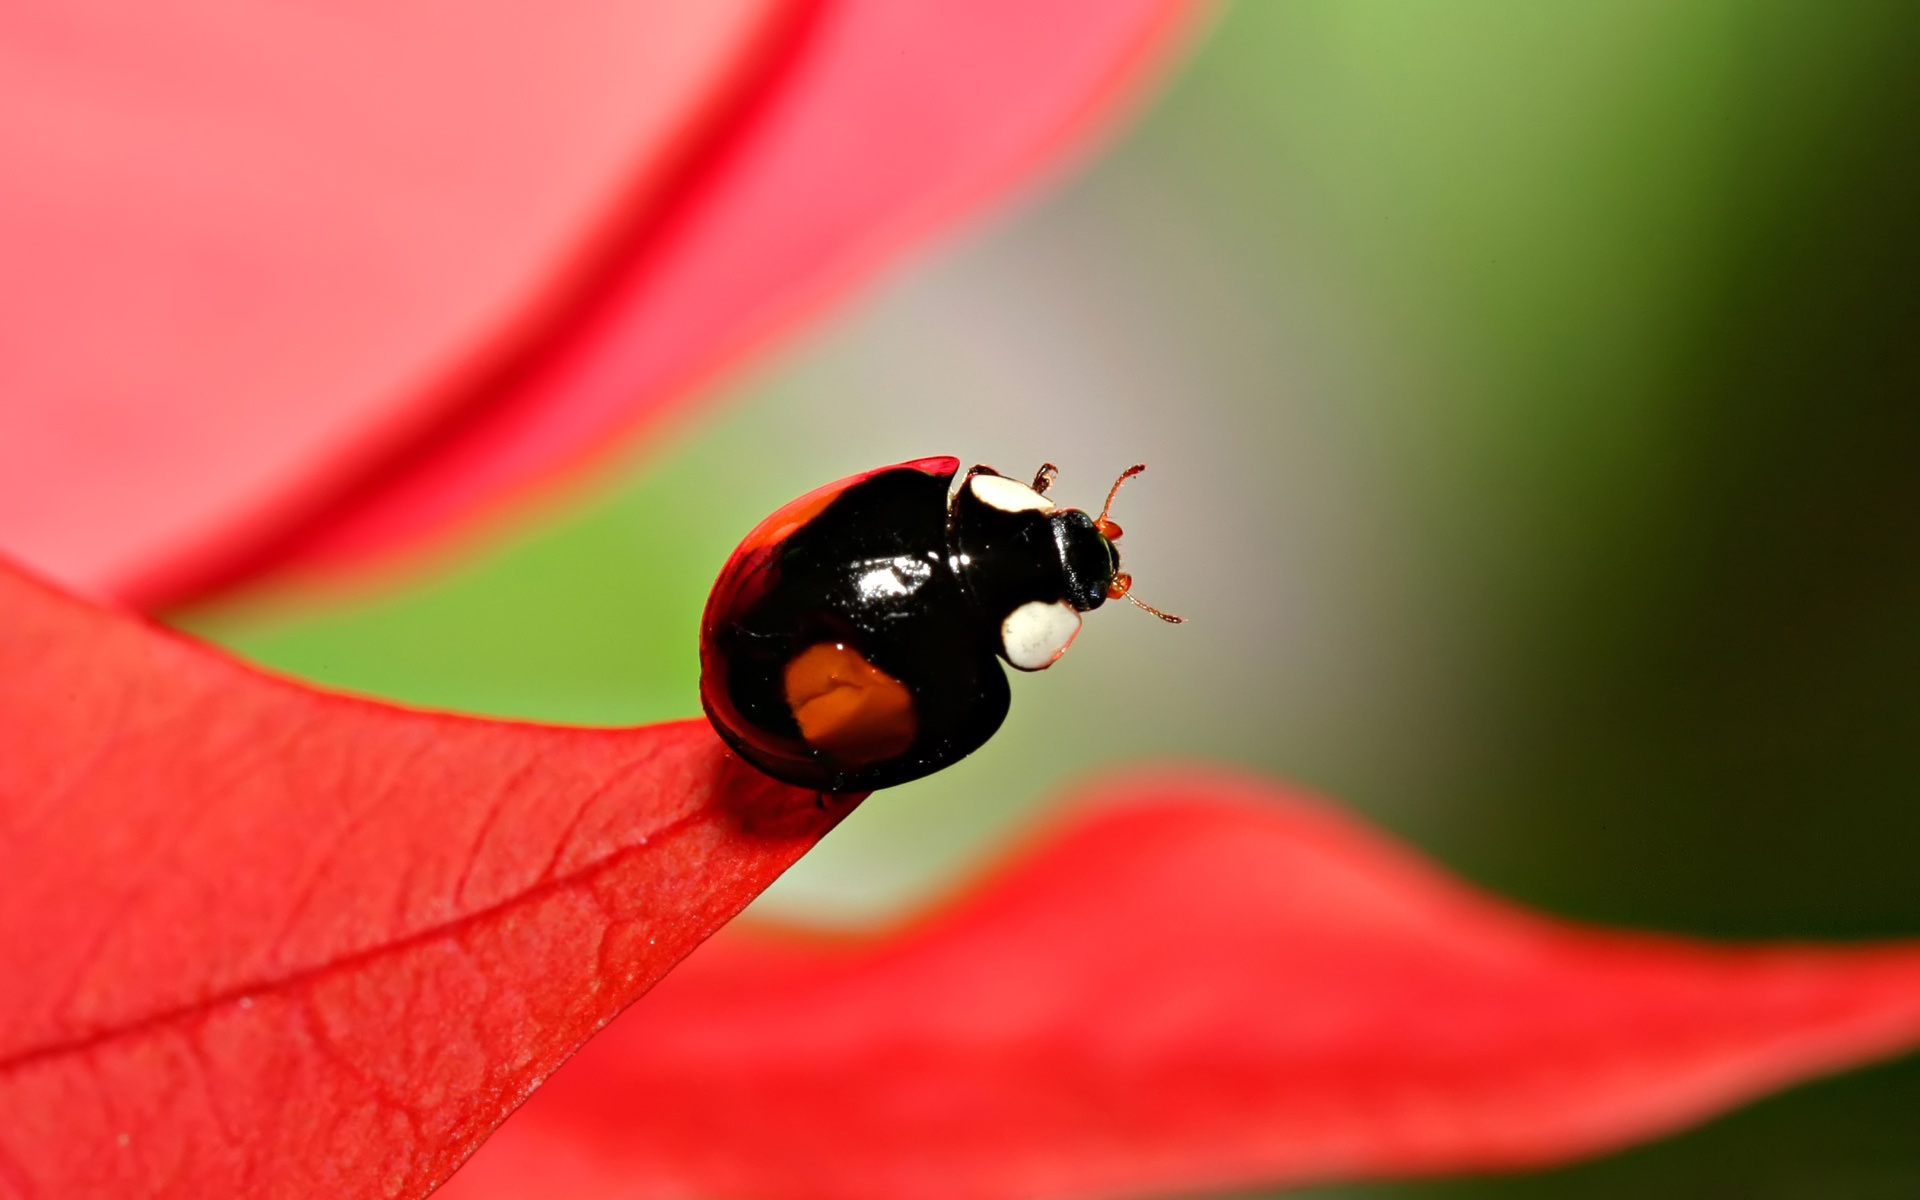 26294 download wallpaper Insects, Ladybugs screensavers and pictures for free